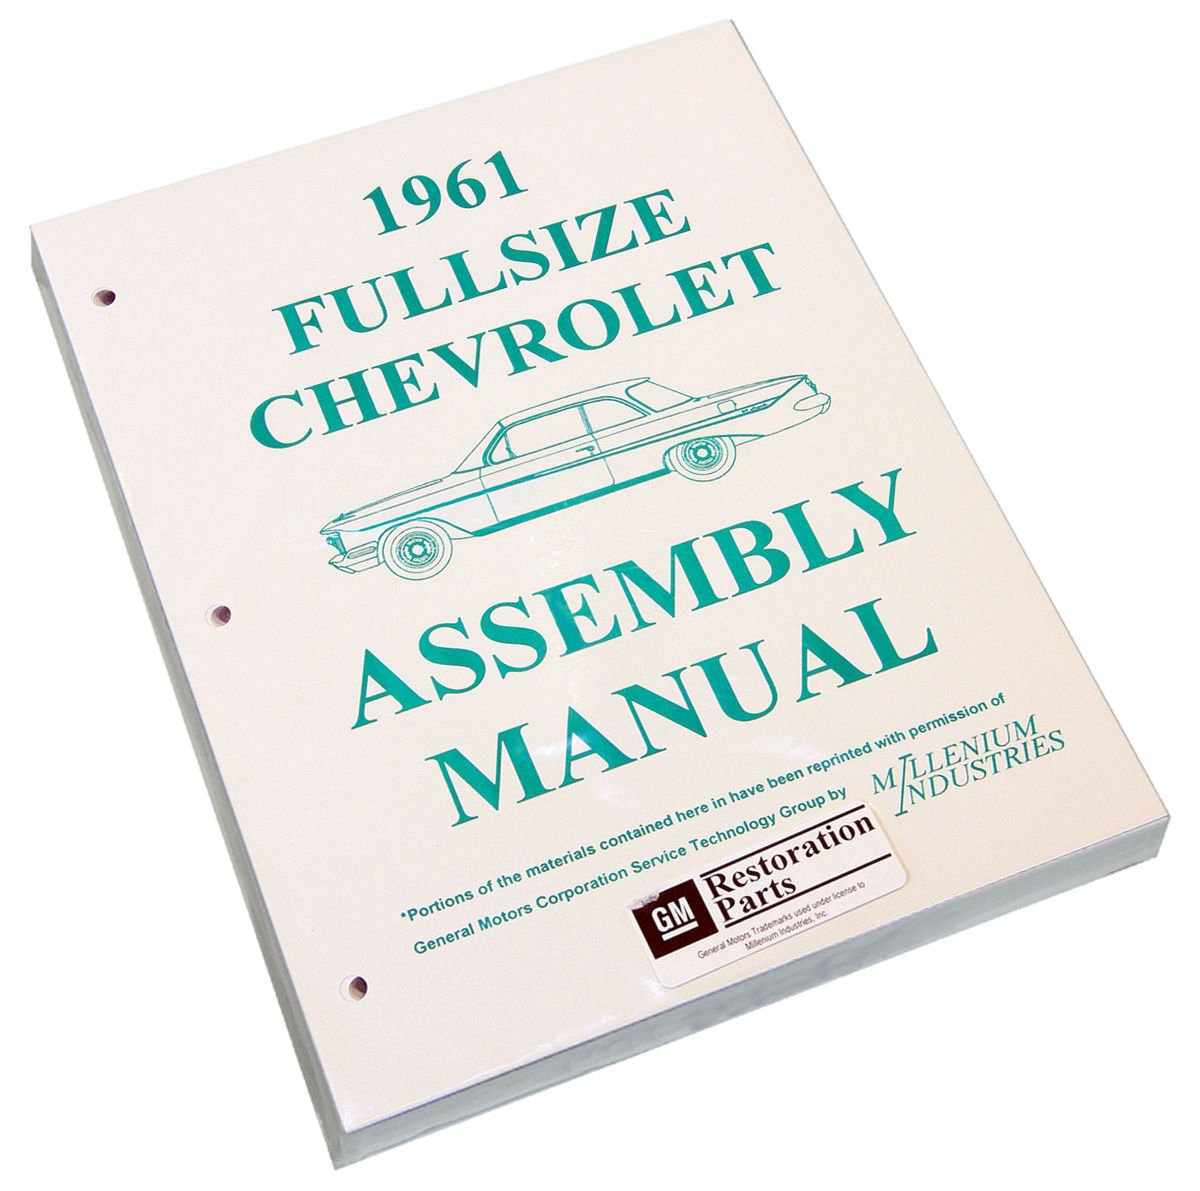 Inline Tube (I-2-15) Factory Assembly Manual for 1961 Chevrolet Full Sized Cars Bel Air, Impala and Wagons